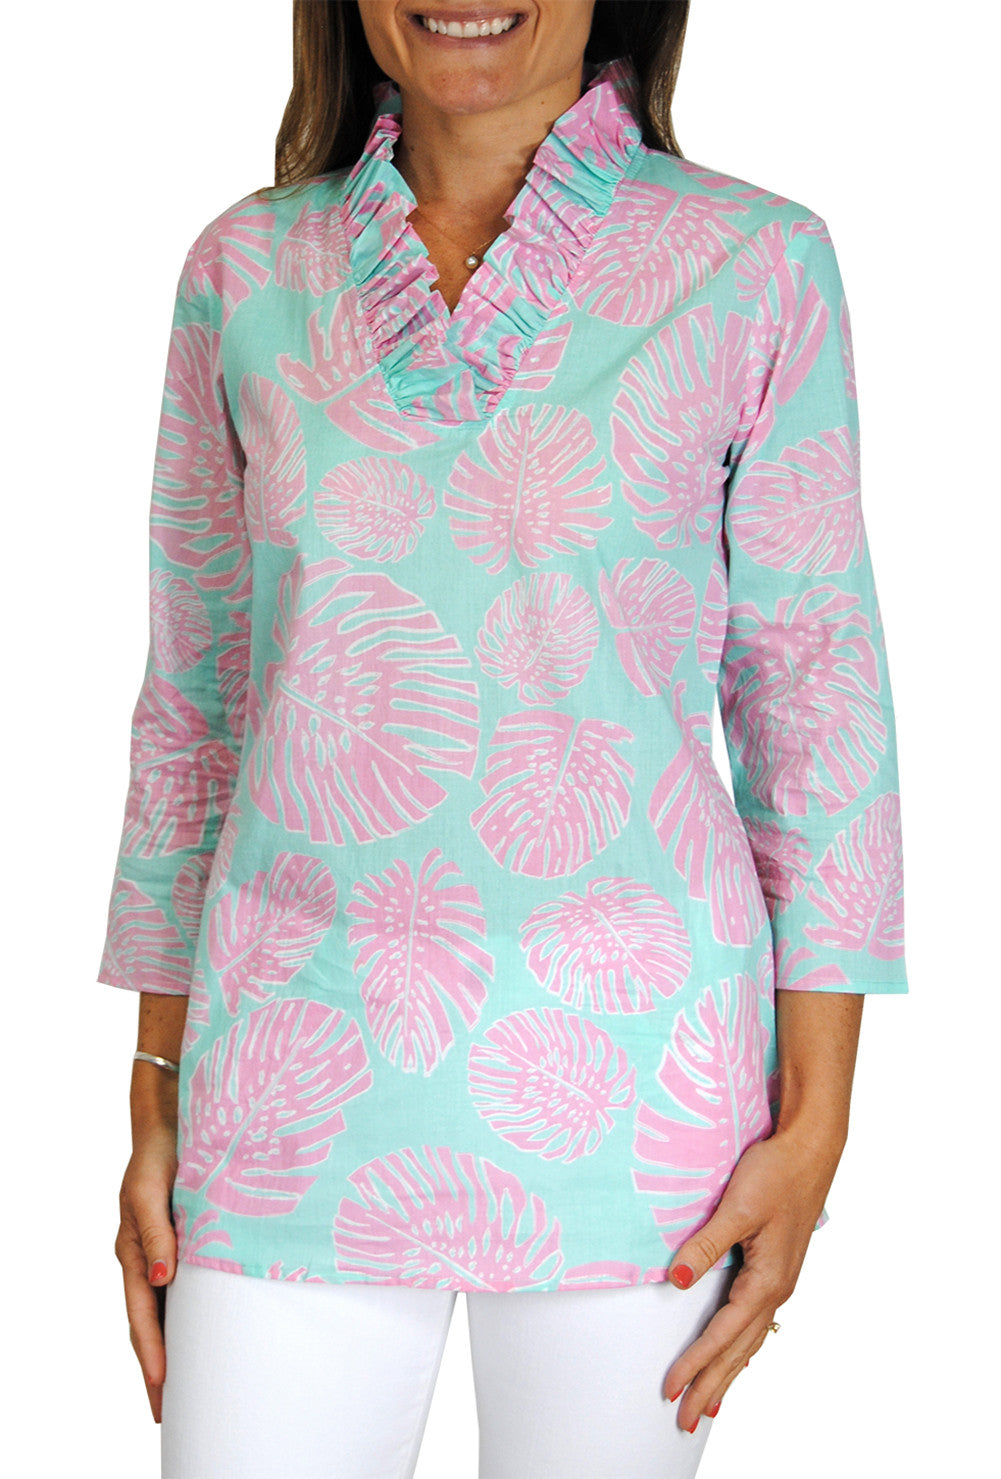 Parker Cotton Tunic in Banana Leaf (see more colors)